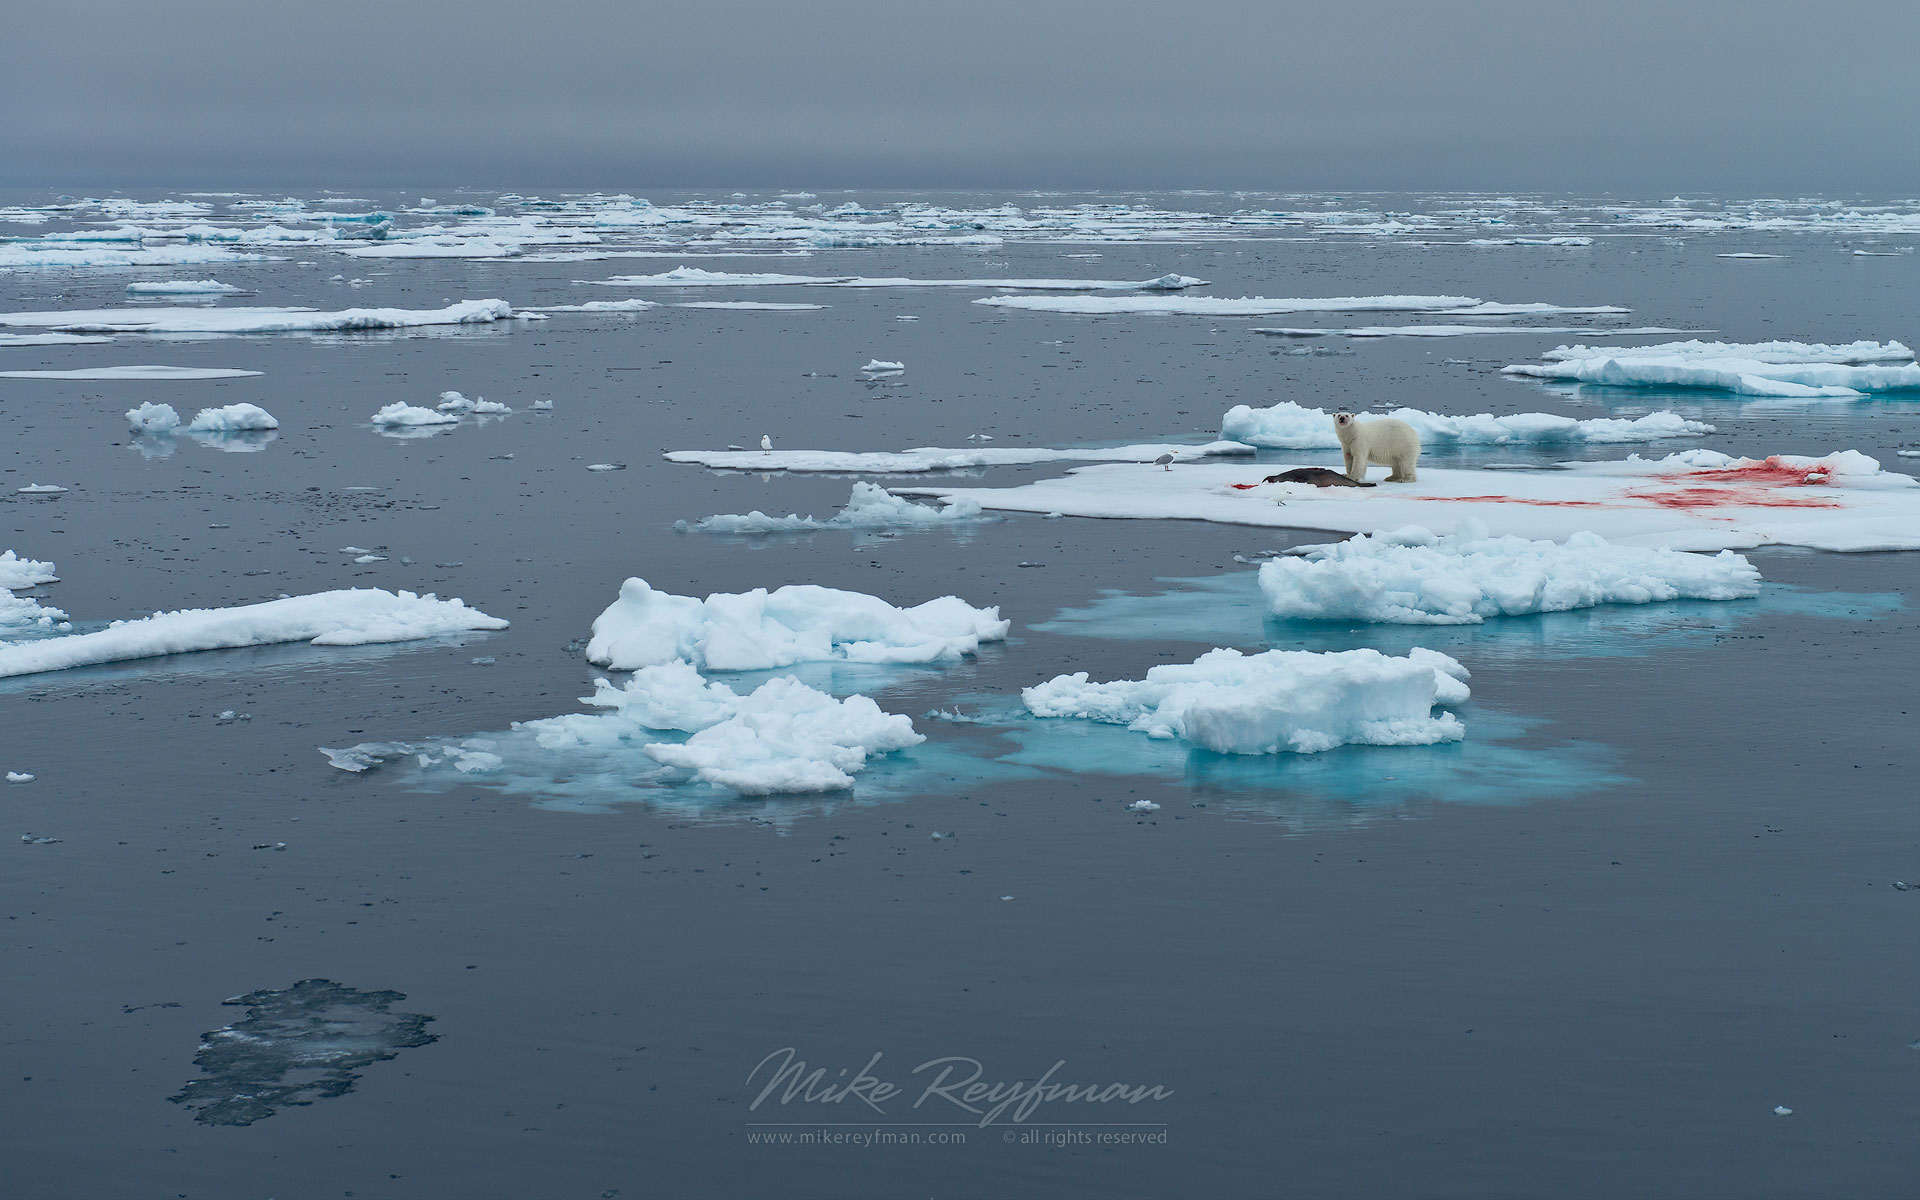 Polar bear with fresh seal kill on an ice floe. Svalbard, Norway. 81st parallel North. - Polar-Bears-Svalbard-Spitsbergen-Norway - Mike Reyfman Photography